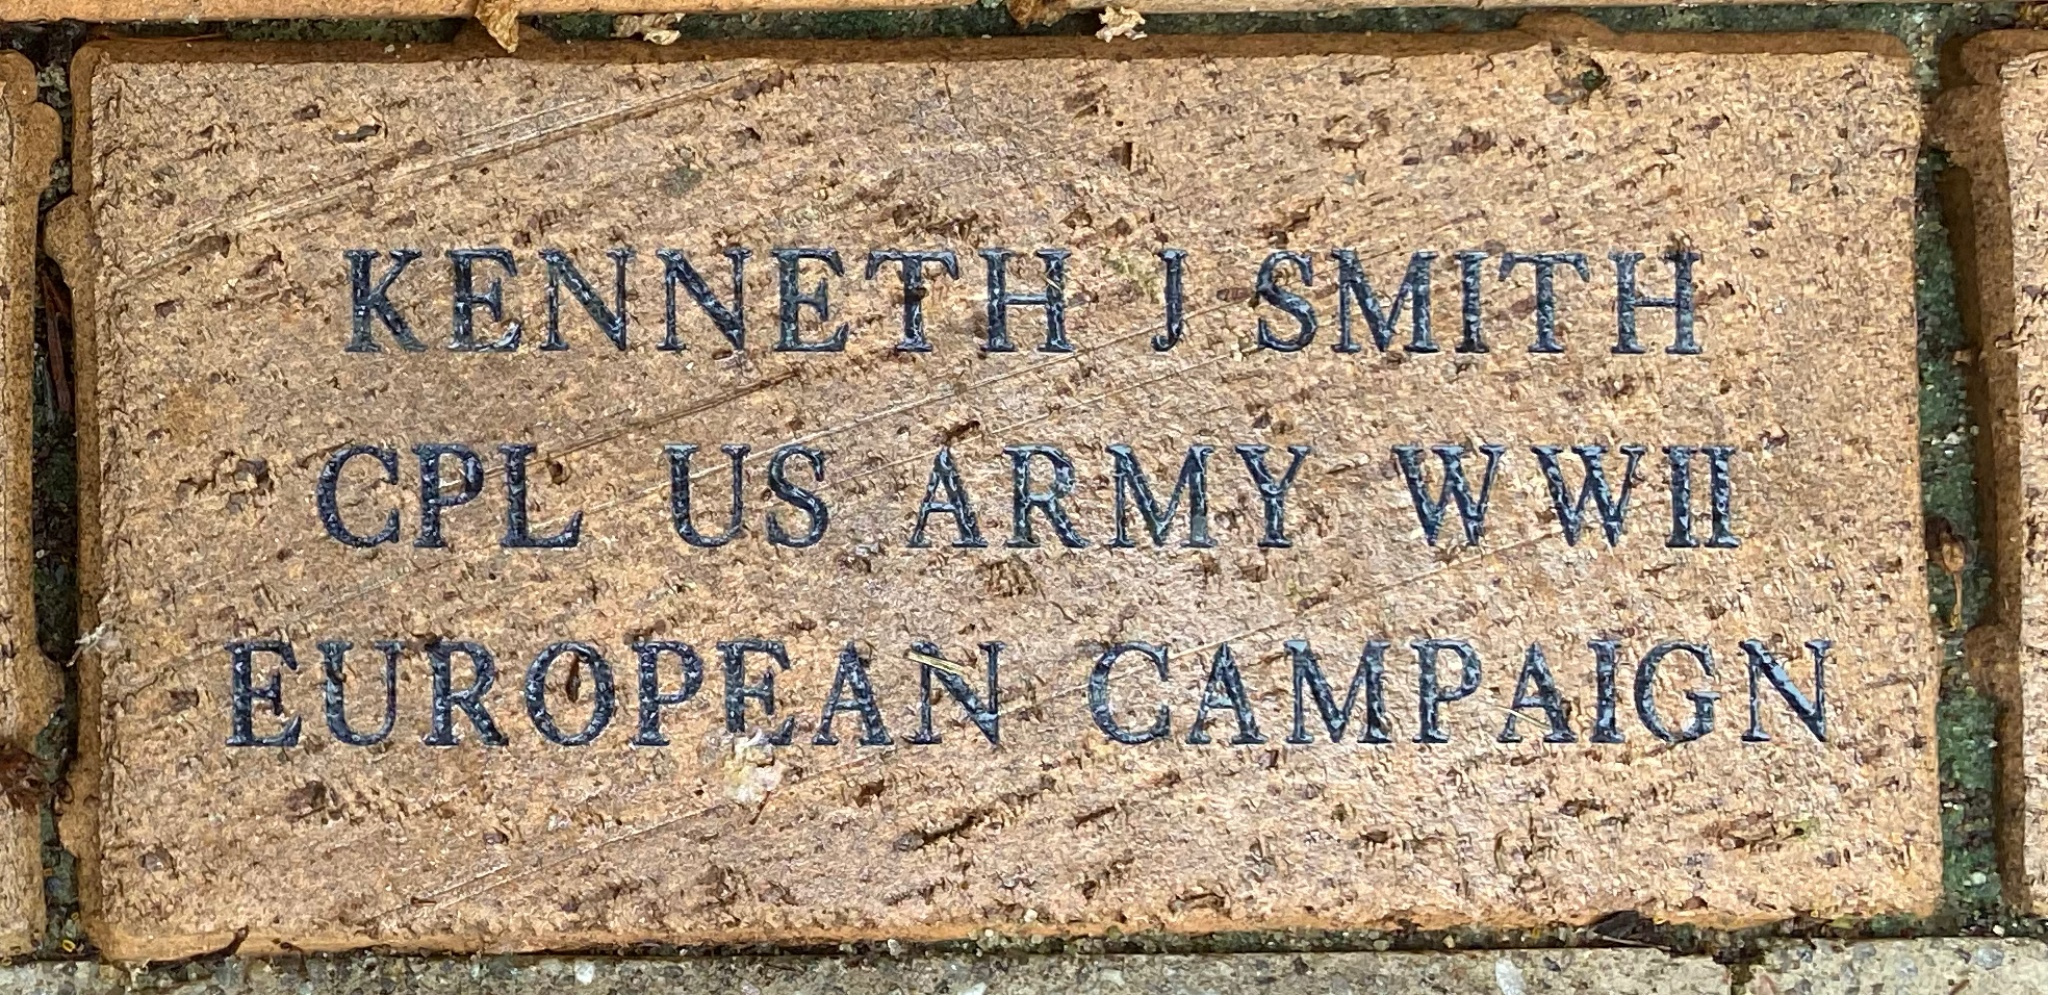 KENNETH J. SMITH CPL US ARMY WWII EUROPEAN CAMPAIGN